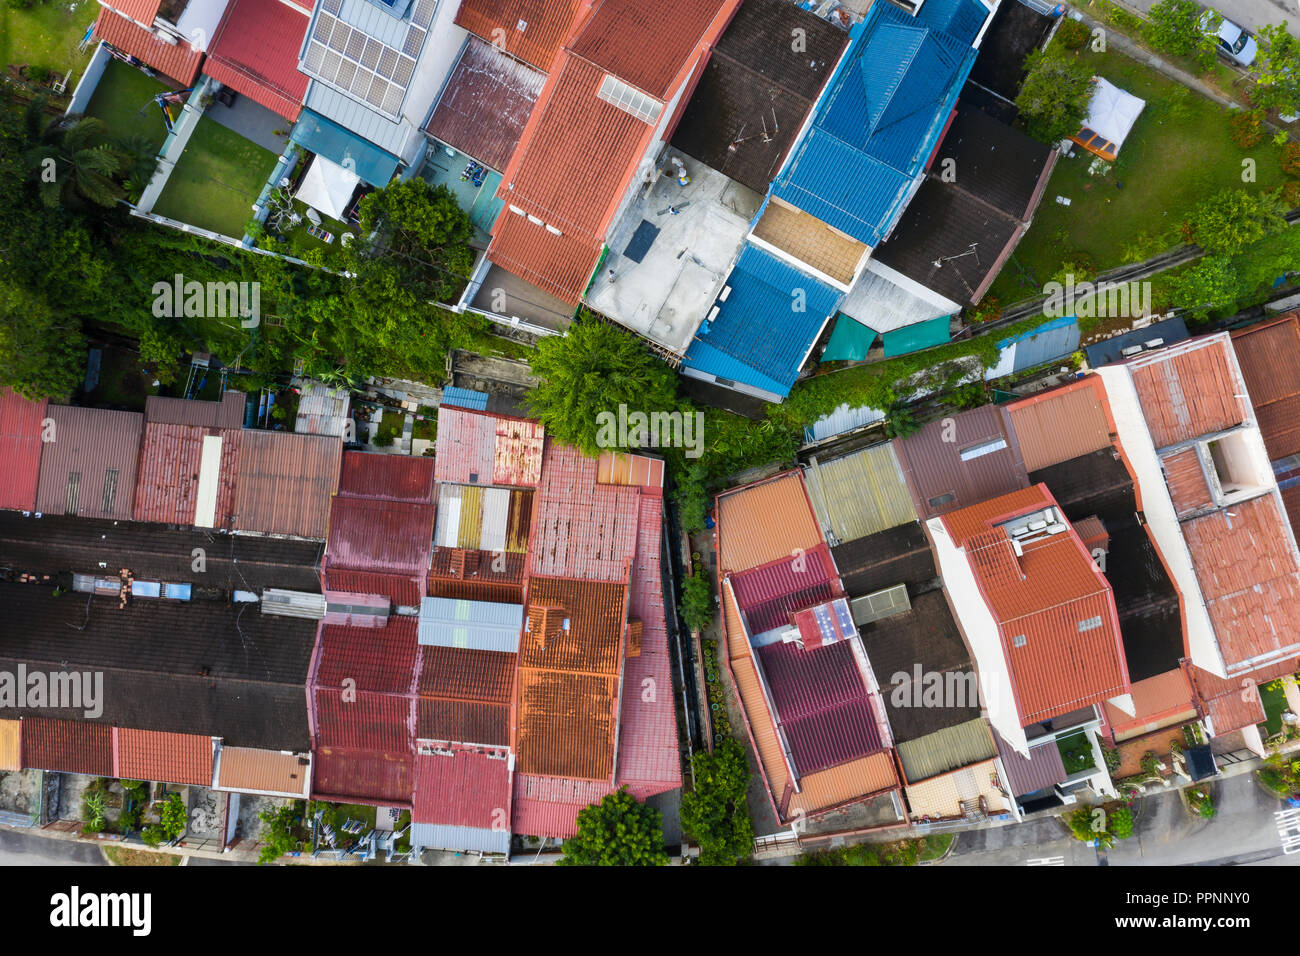 Aerial view of residential private property rooftop, Hillview Singapore. - Stock Image